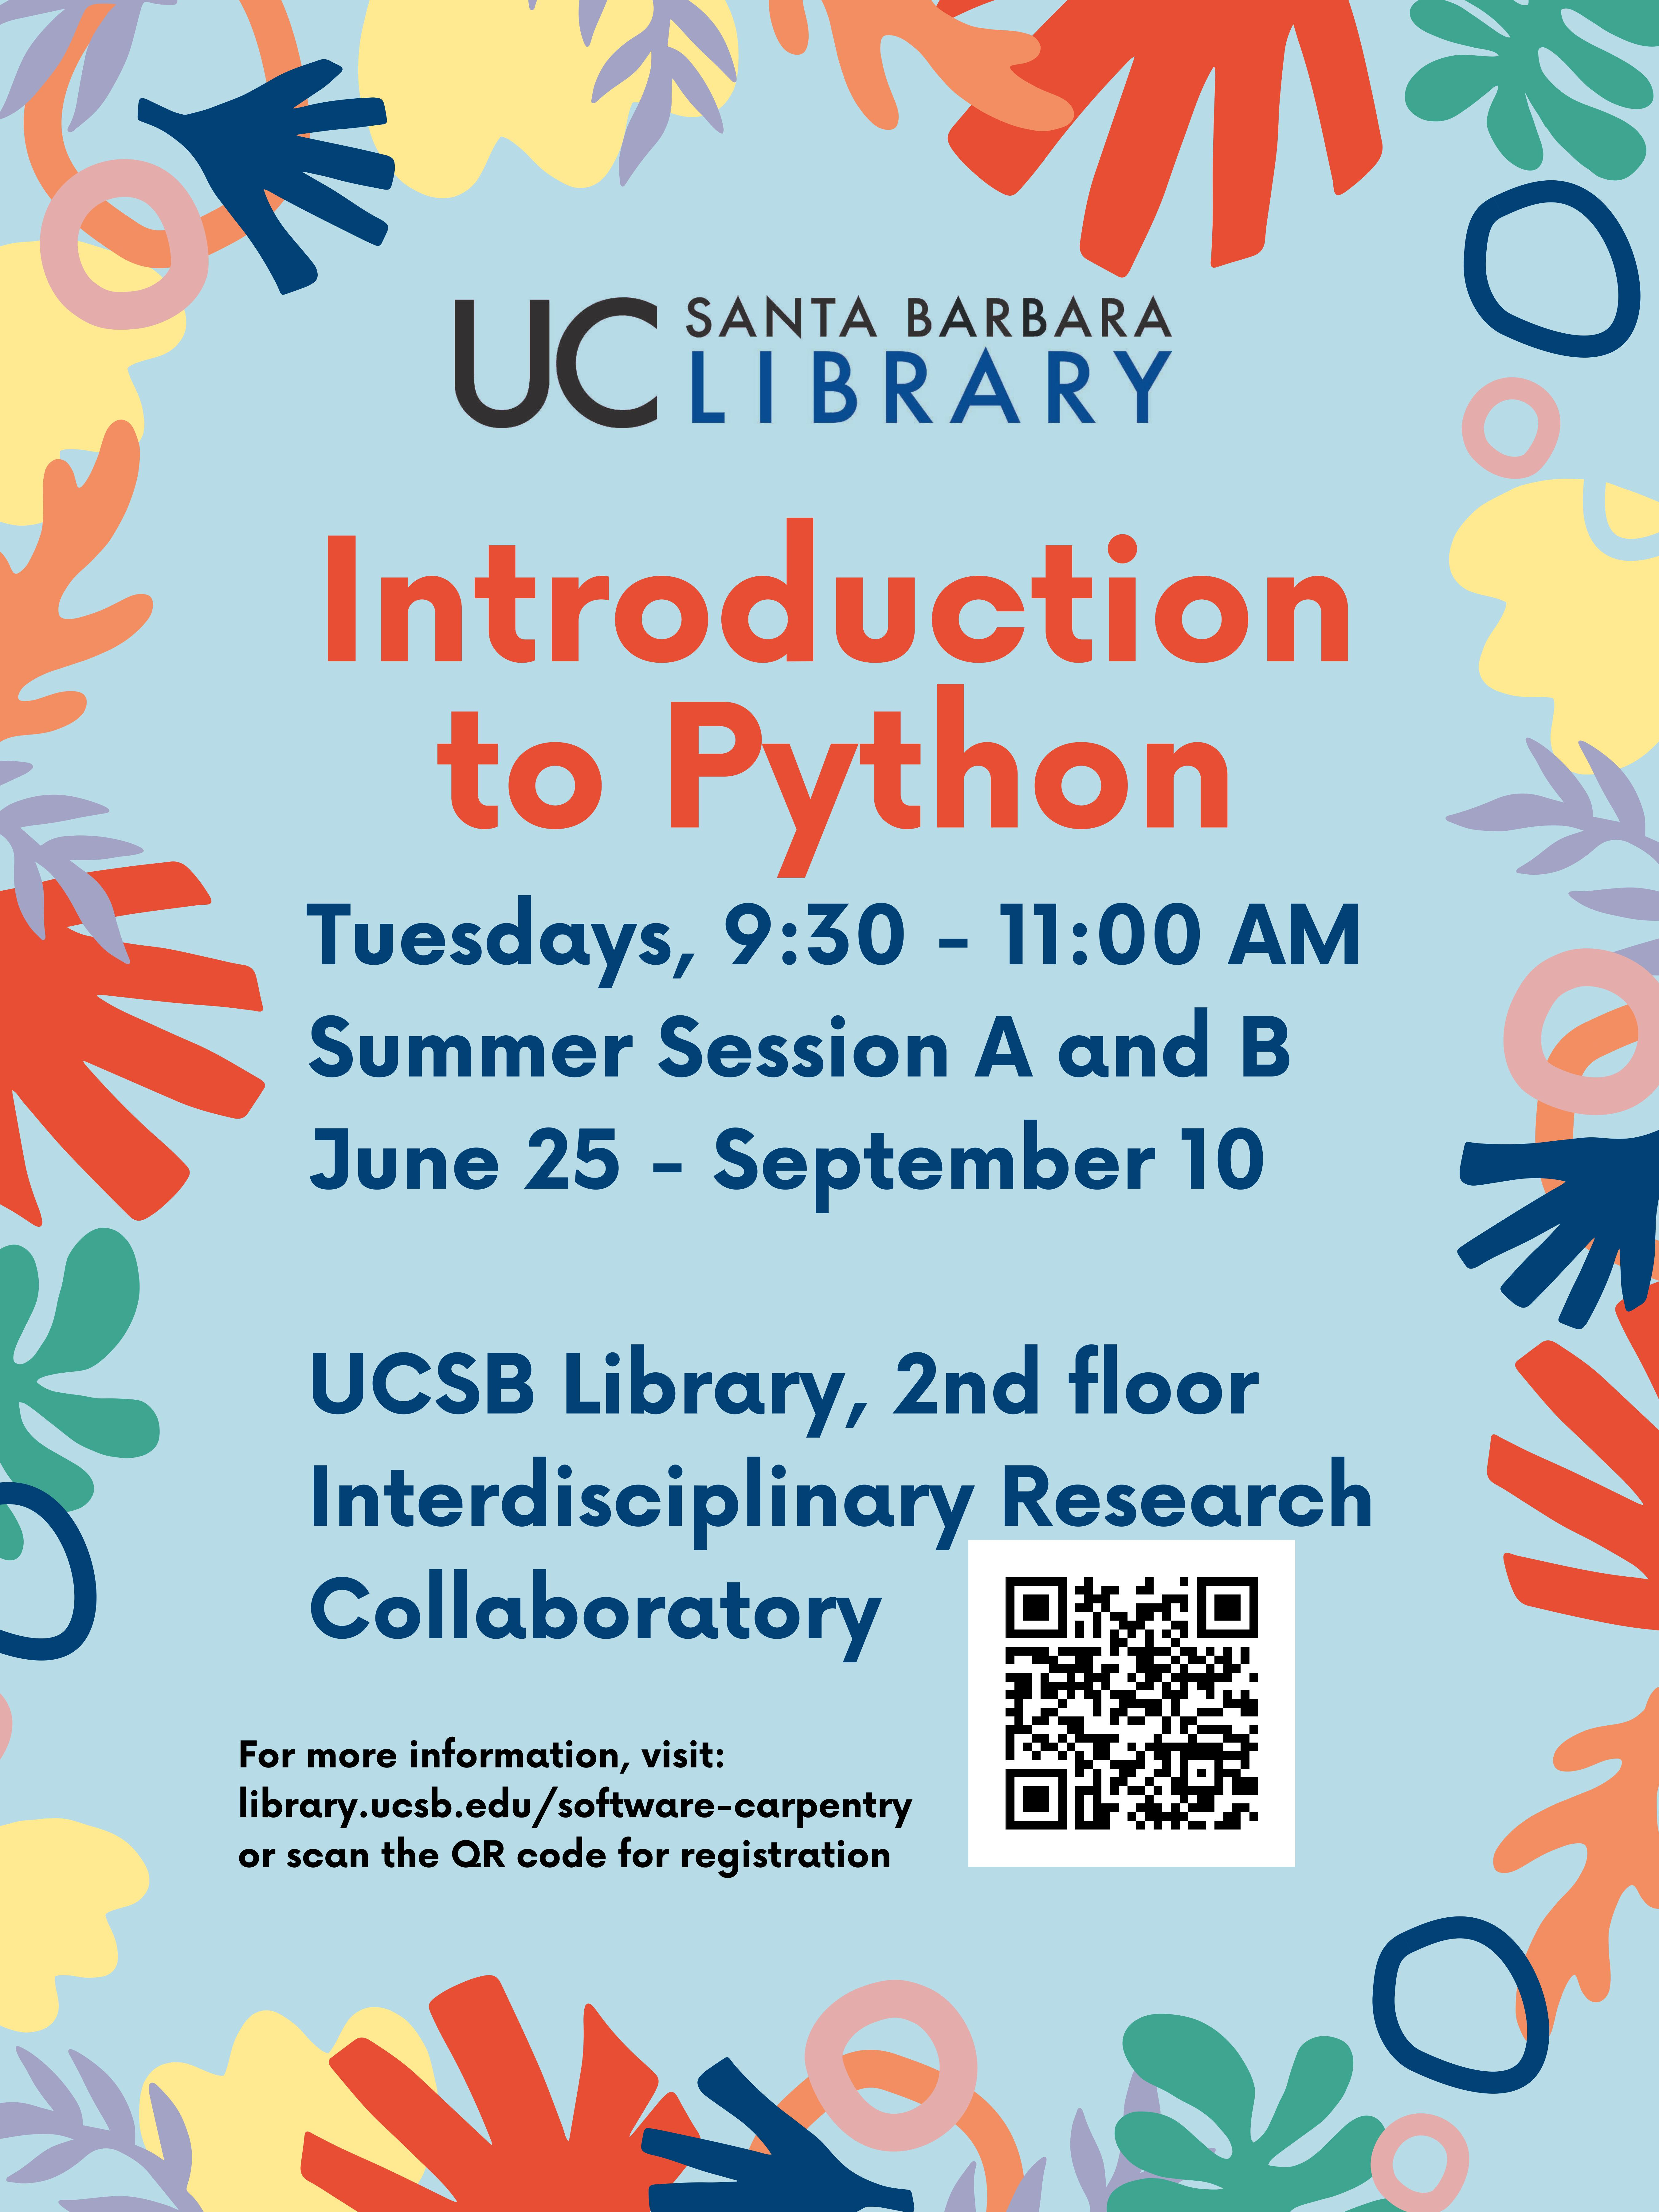 UCSB Library to offer free Python Series for Summer 2019